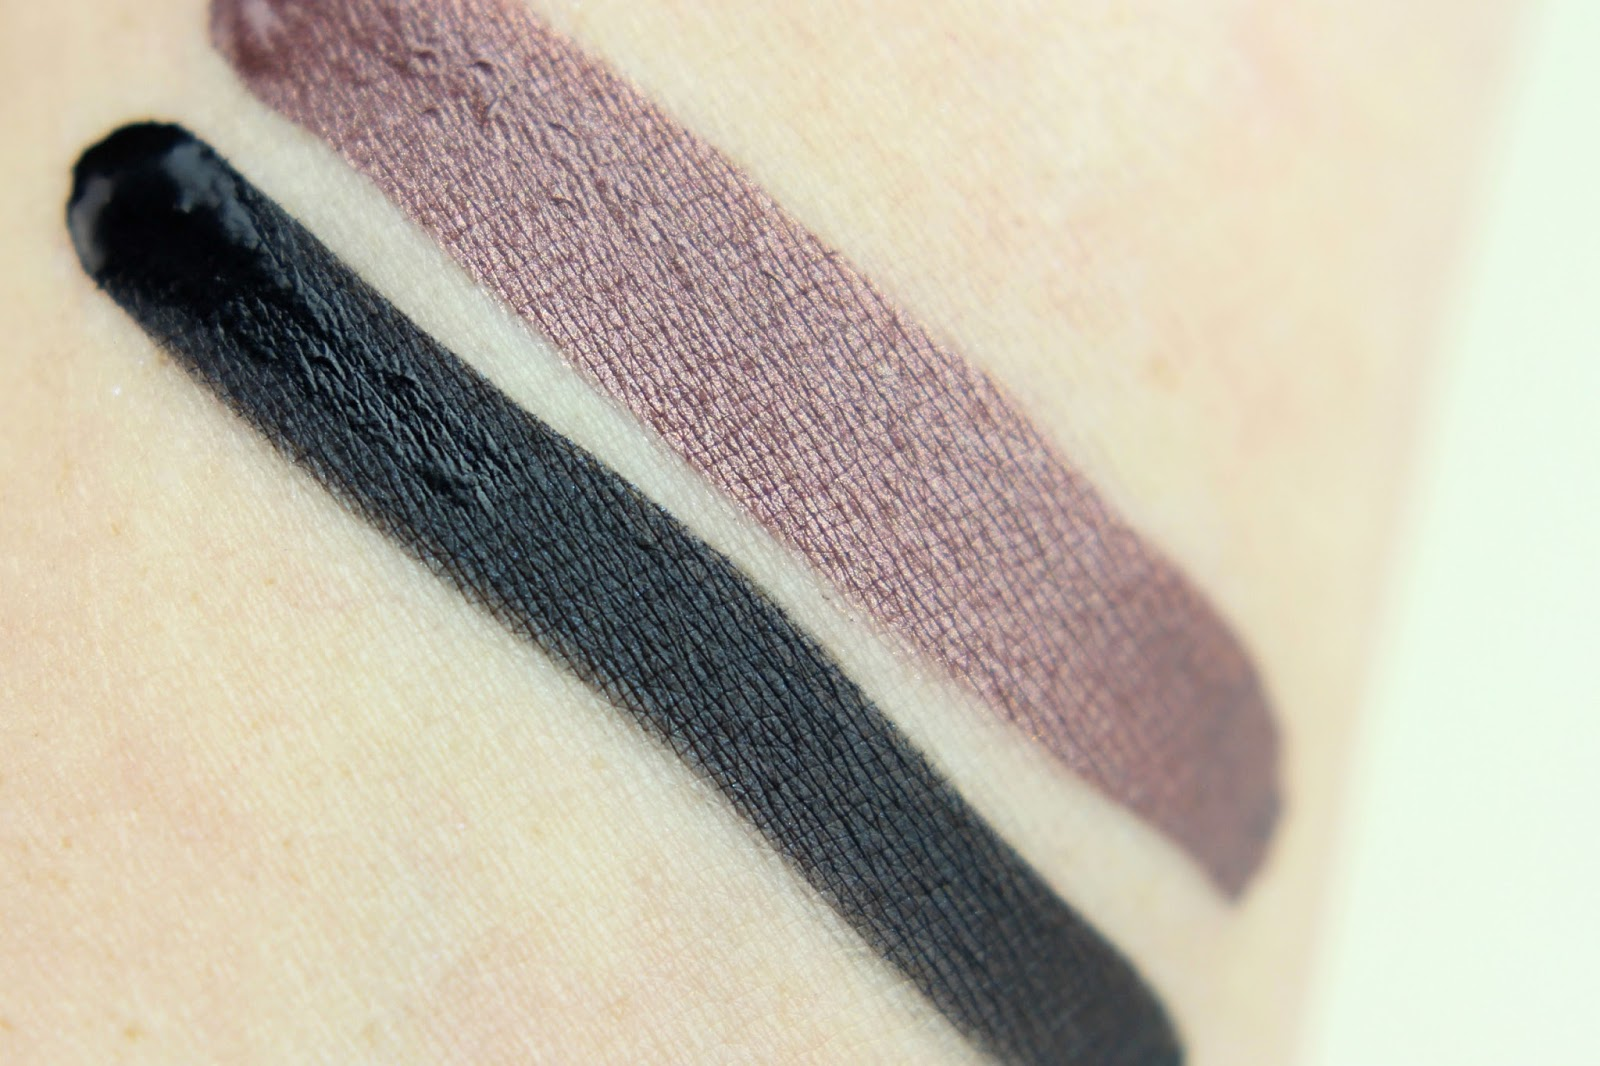 drogerie, glitzer, glow in the dark top coat, latex like eye shadow, lipgloss, nagellack, p2 cosmetics, party look, pink fizz, review, swatches, touch of light loose powder, tragebilder, up all night,